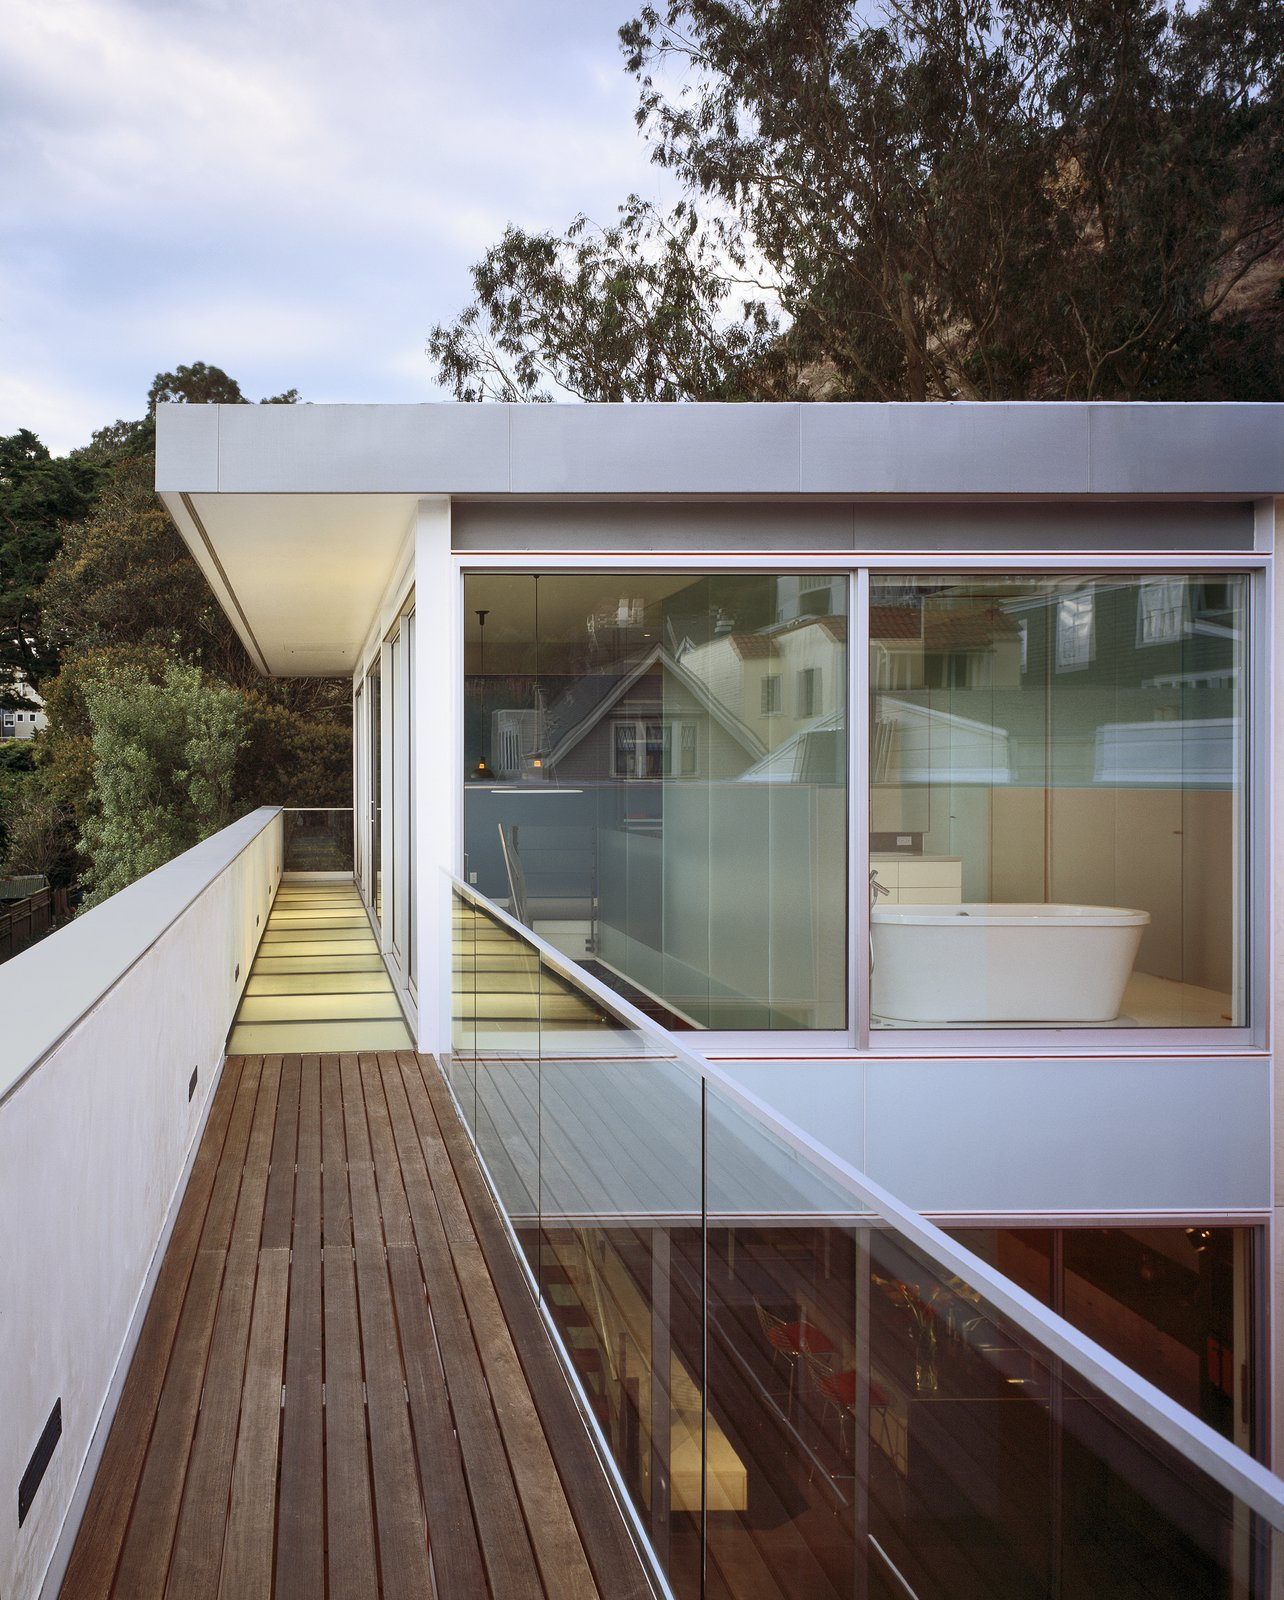 Exterior, Metal Roof Material, Metal Siding Material, House Building Type, Glass Siding Material, and Flat RoofLine Outdoor walkway to the master bedroom  Best Photos from 1532 House